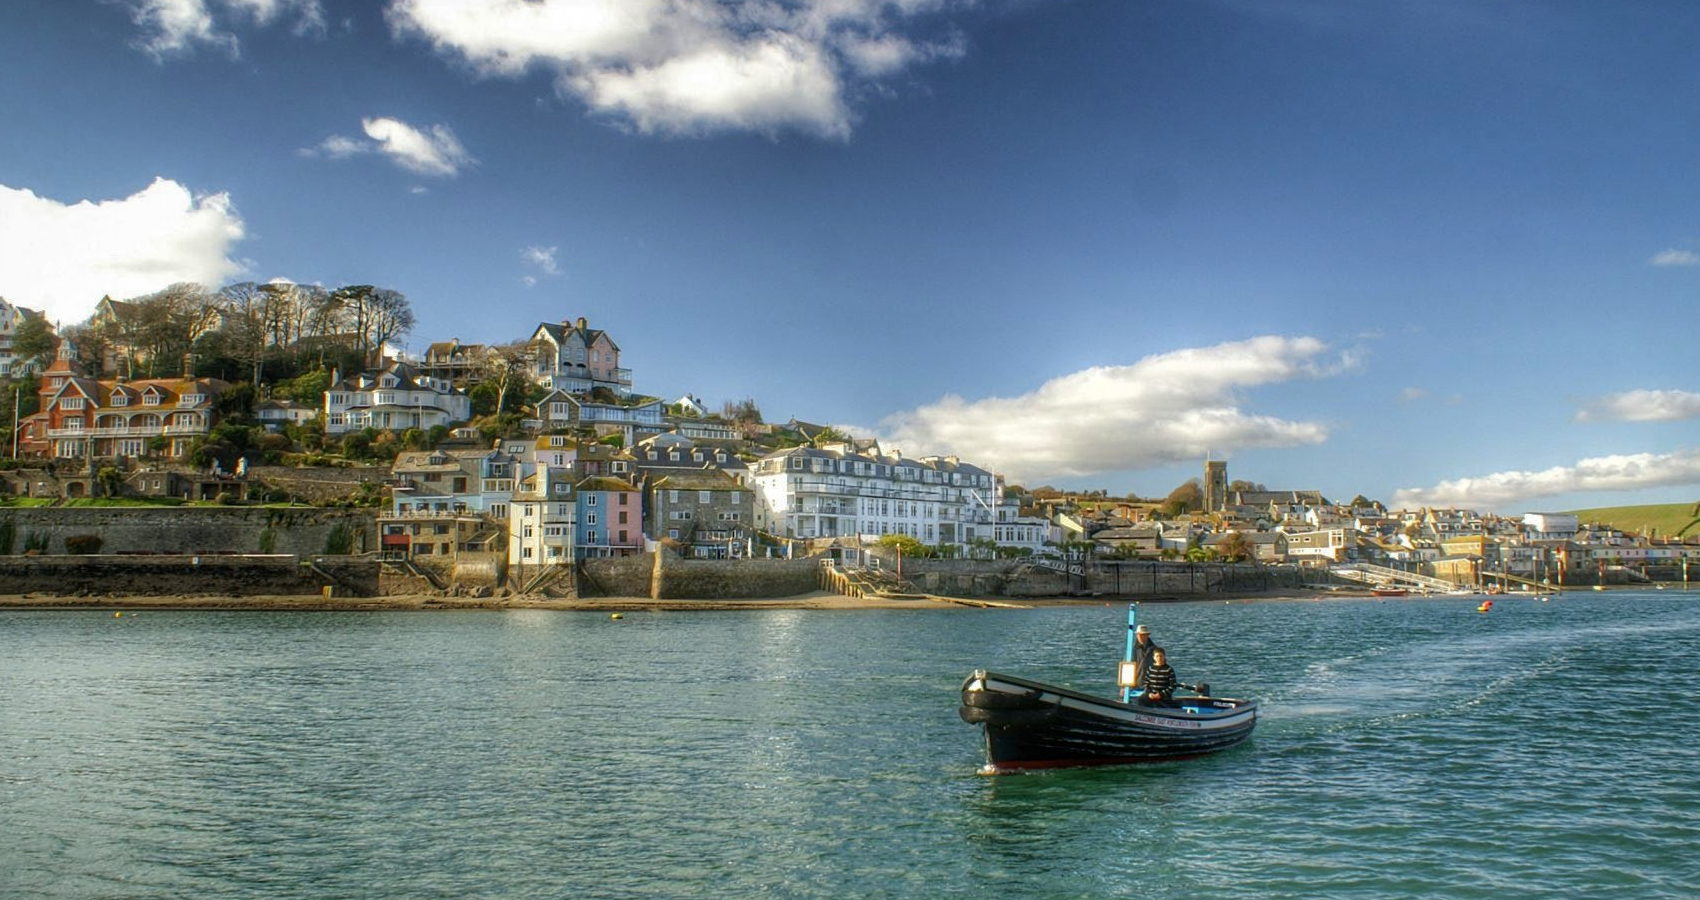 Fishing boat on estuary with Salcombe in the background